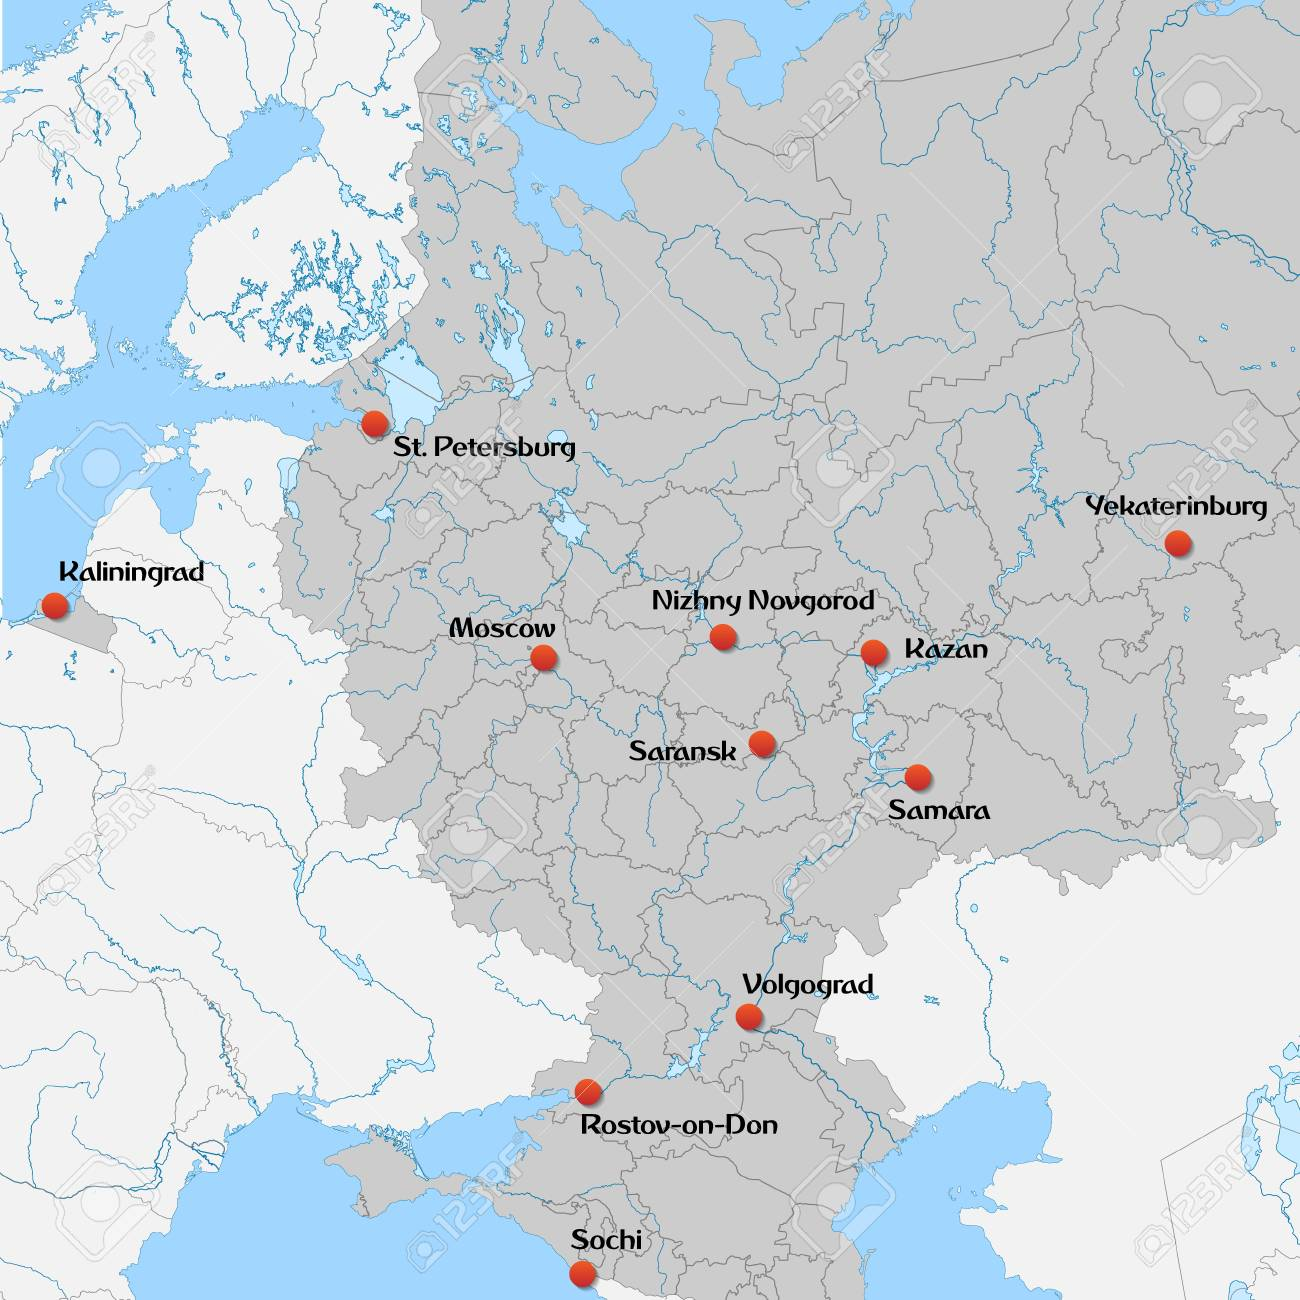 Map of European Russia with football host cities